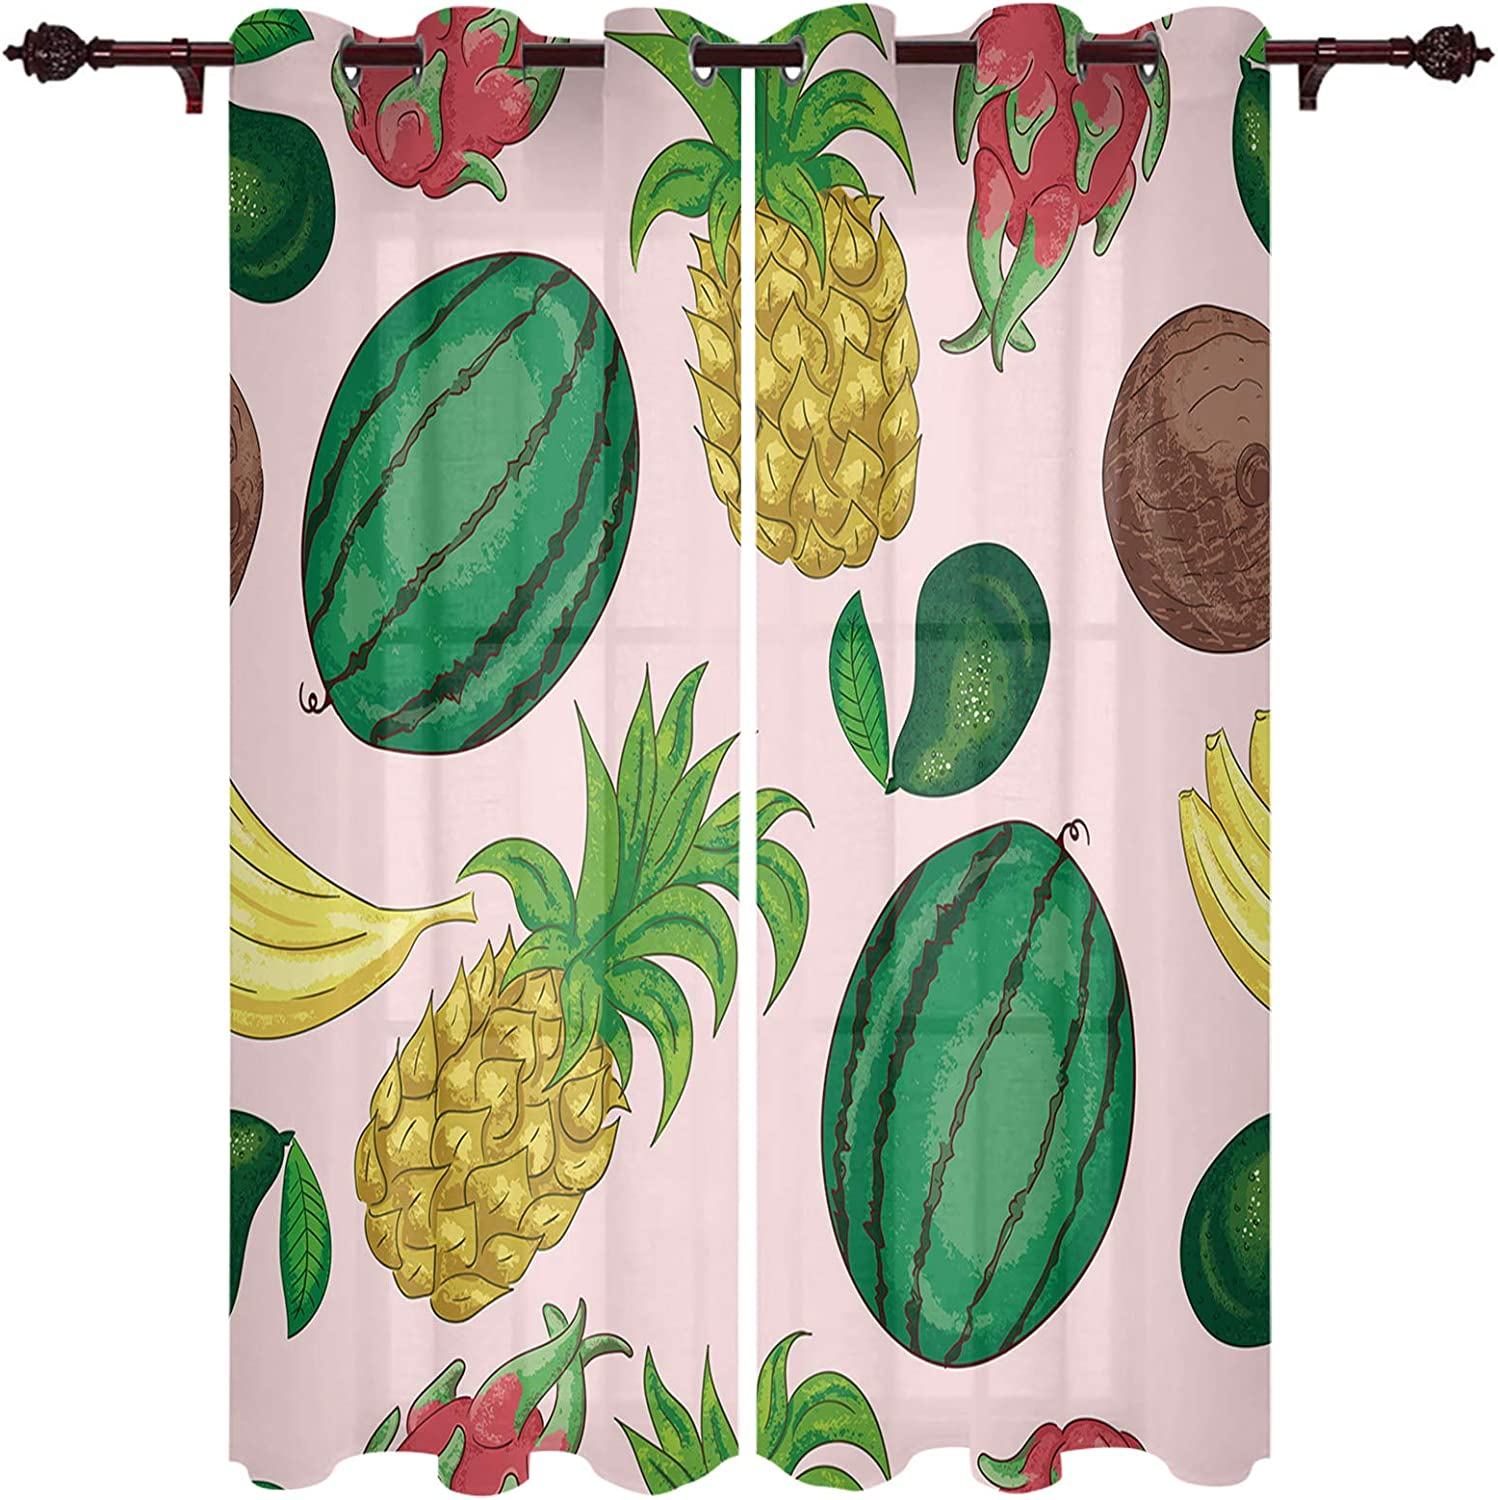 Topics on TV OUR WINGS Popular product Set of 2 Panels Curtains for Bedroom Roo Window Living